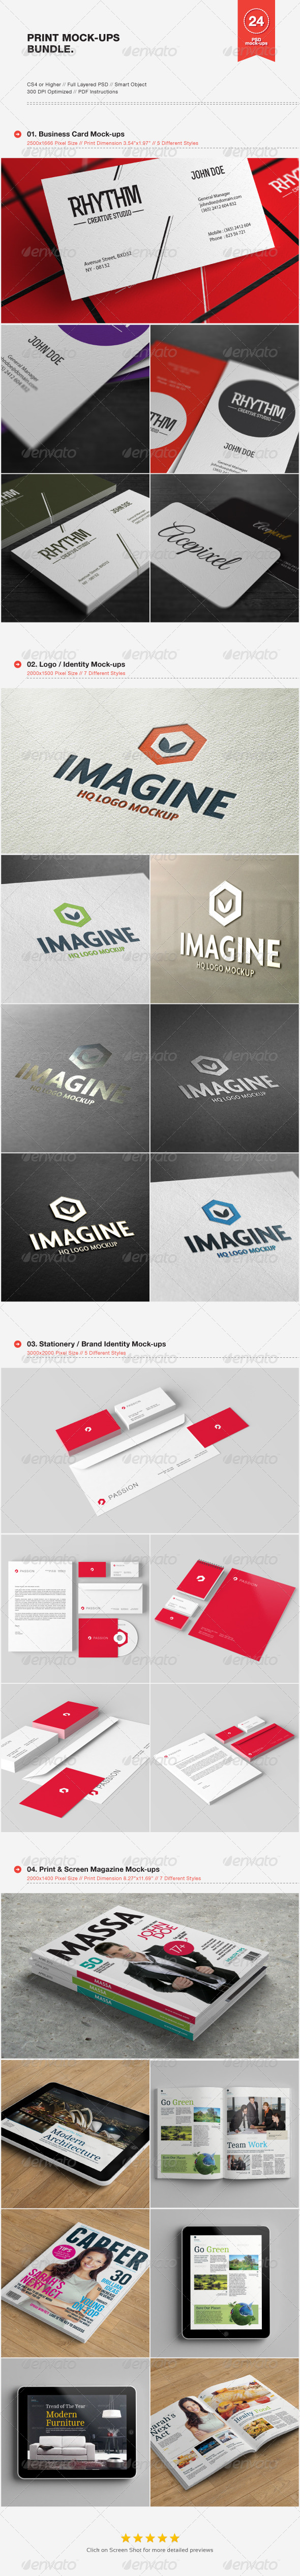 Print Mock-ups Bundle - Print Product Mock-Ups